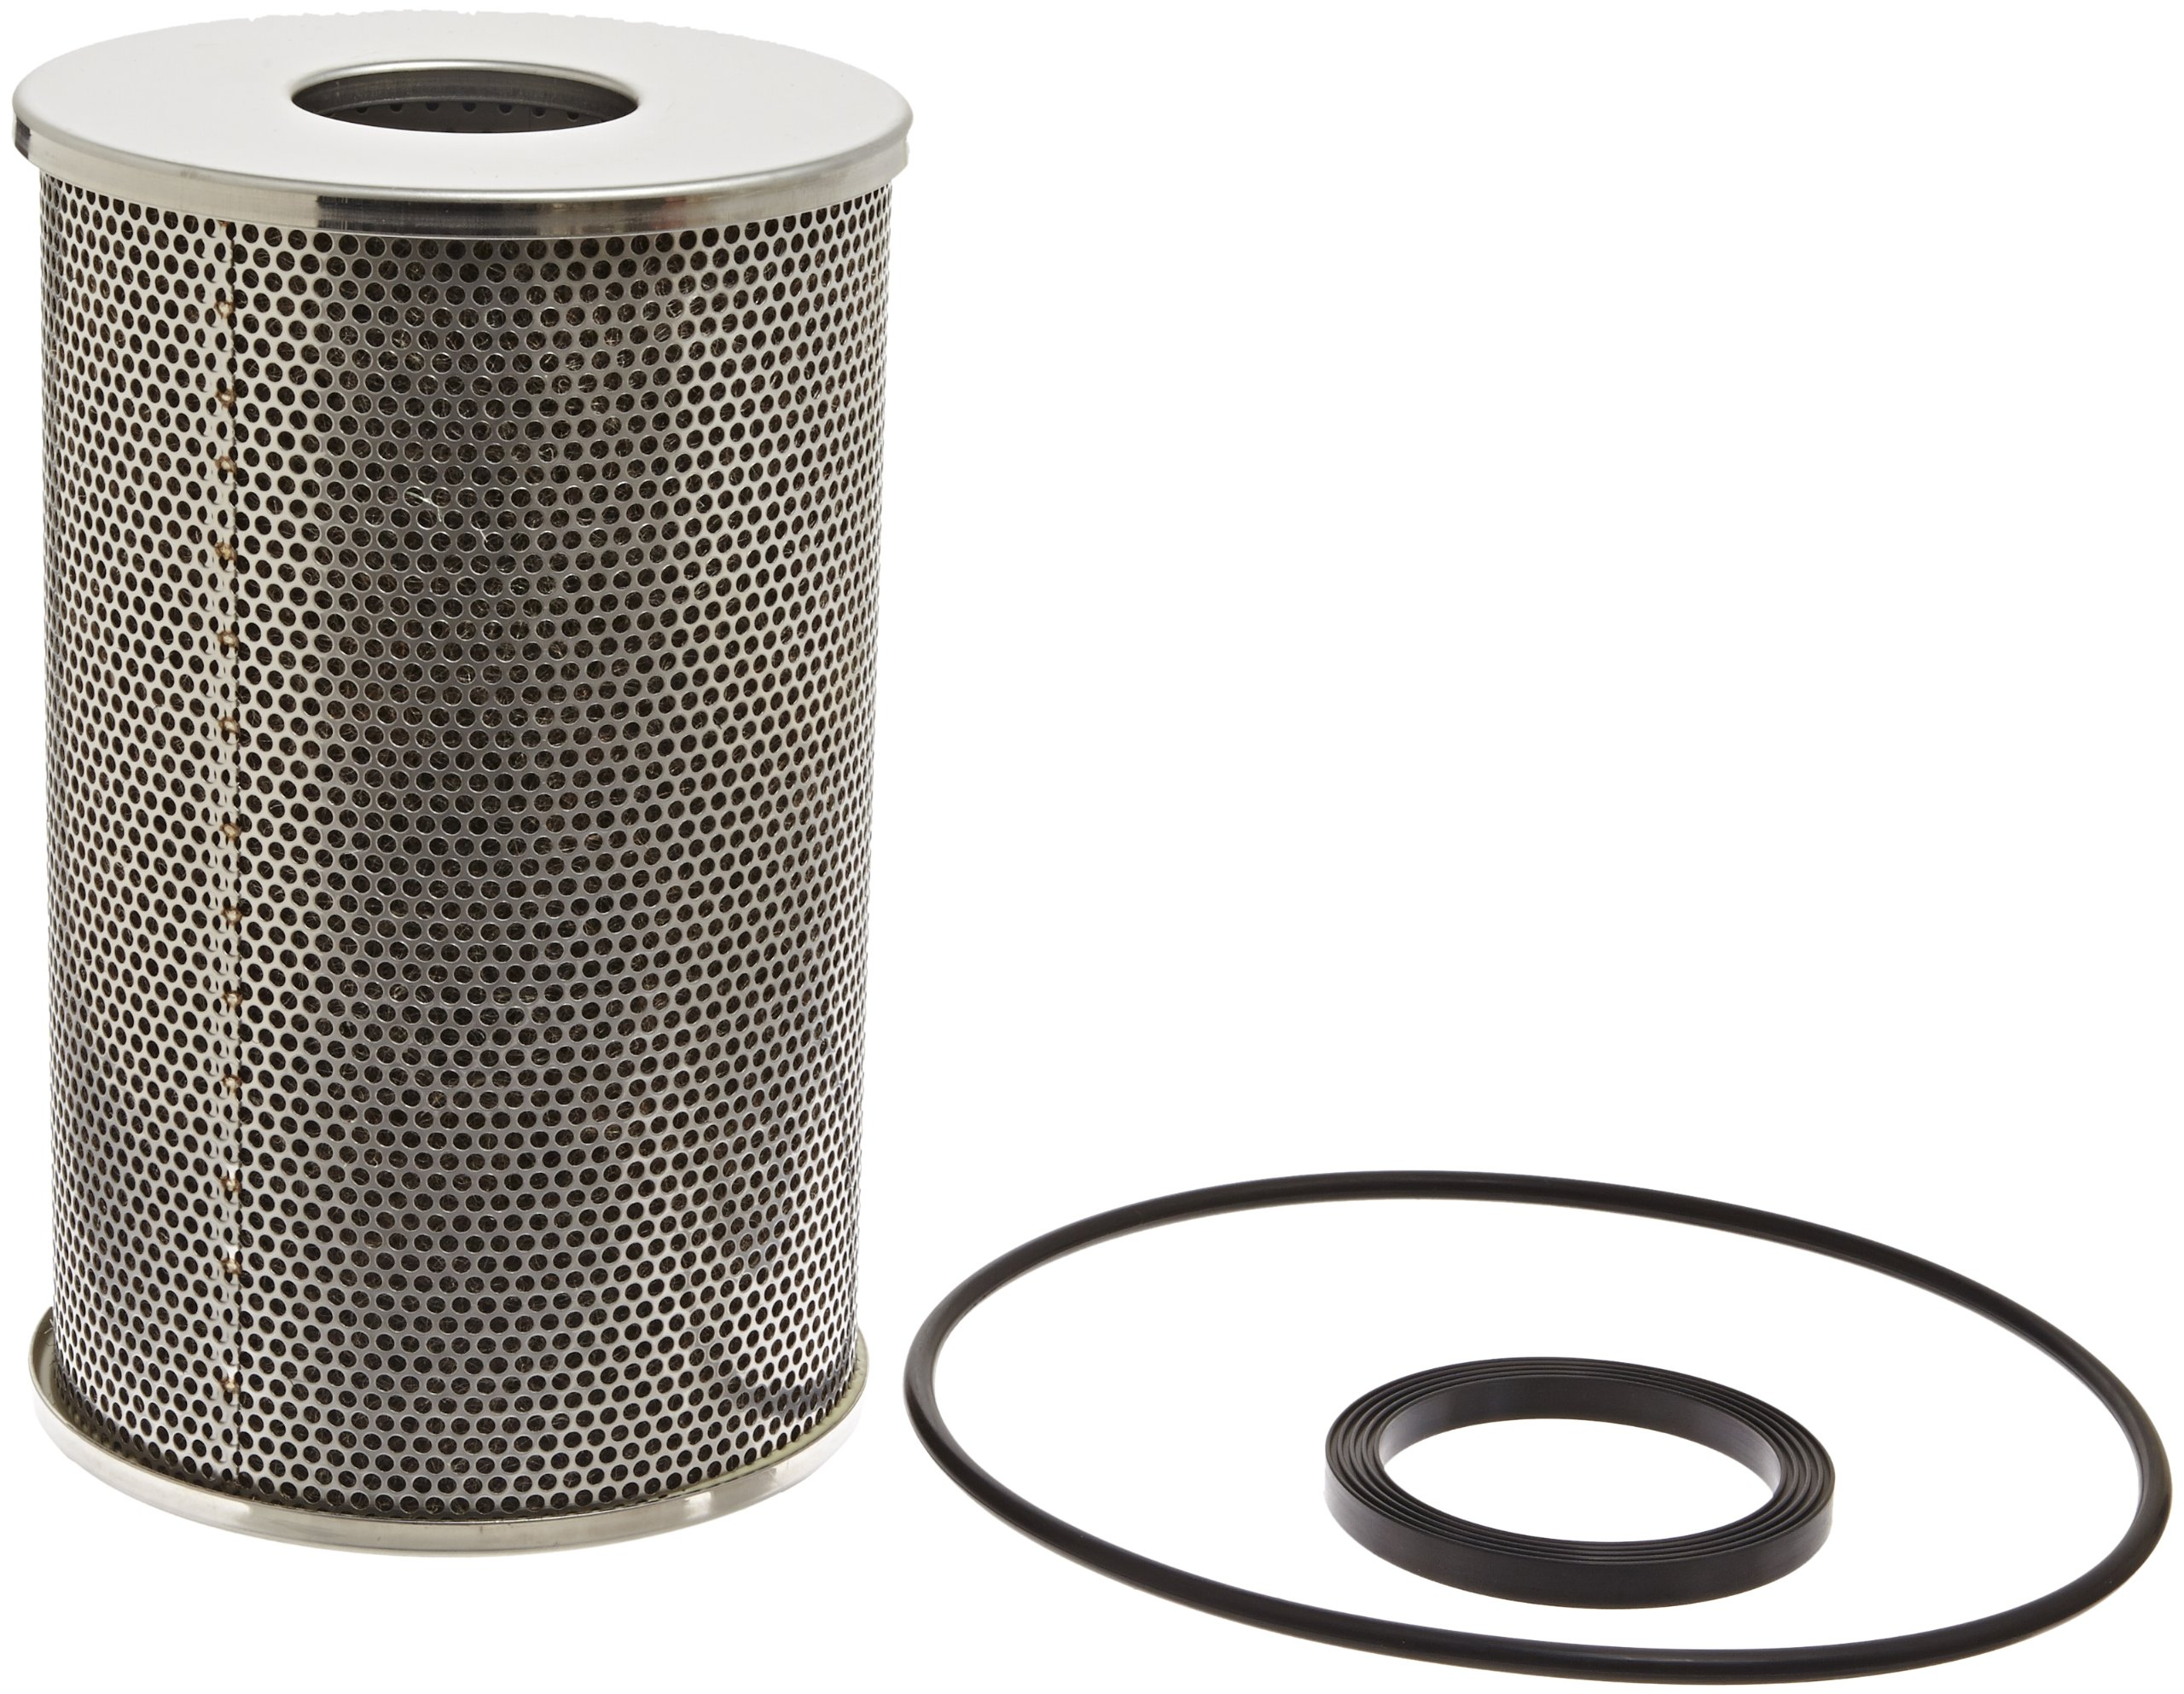 SMC AMG-EL850 Water Separator Replacement Element, For use with AMG850